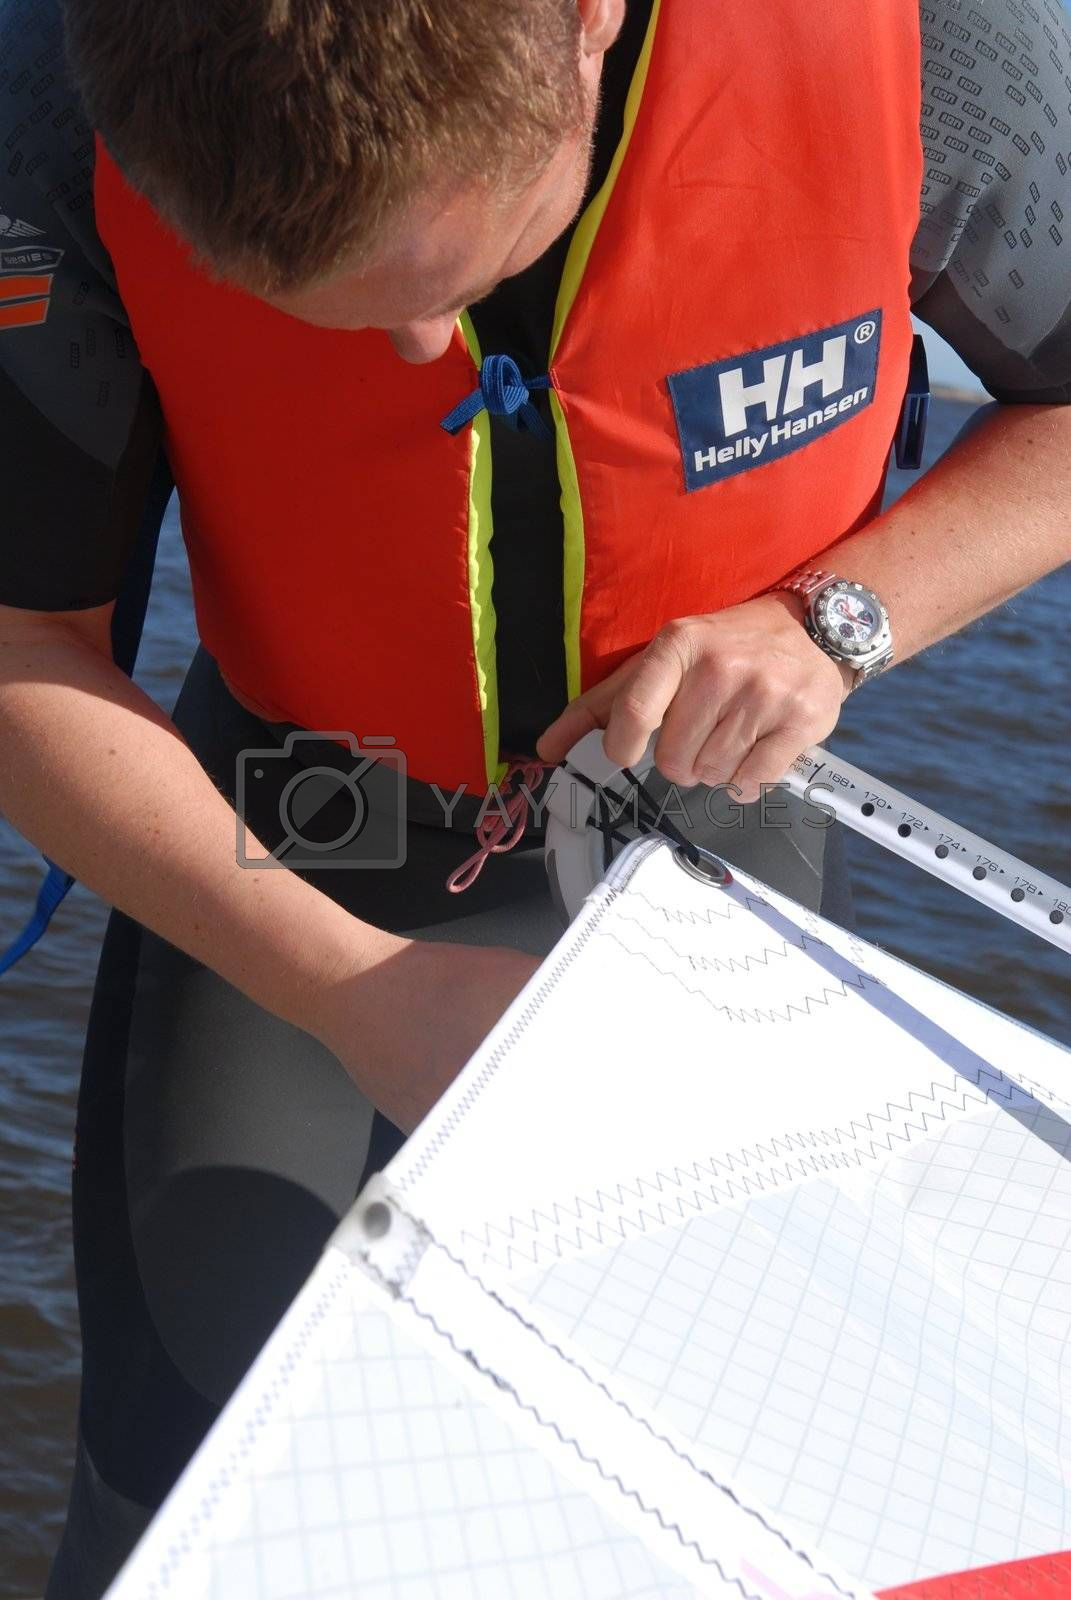 a man wears life jacket. Please note: No negative use allowed.